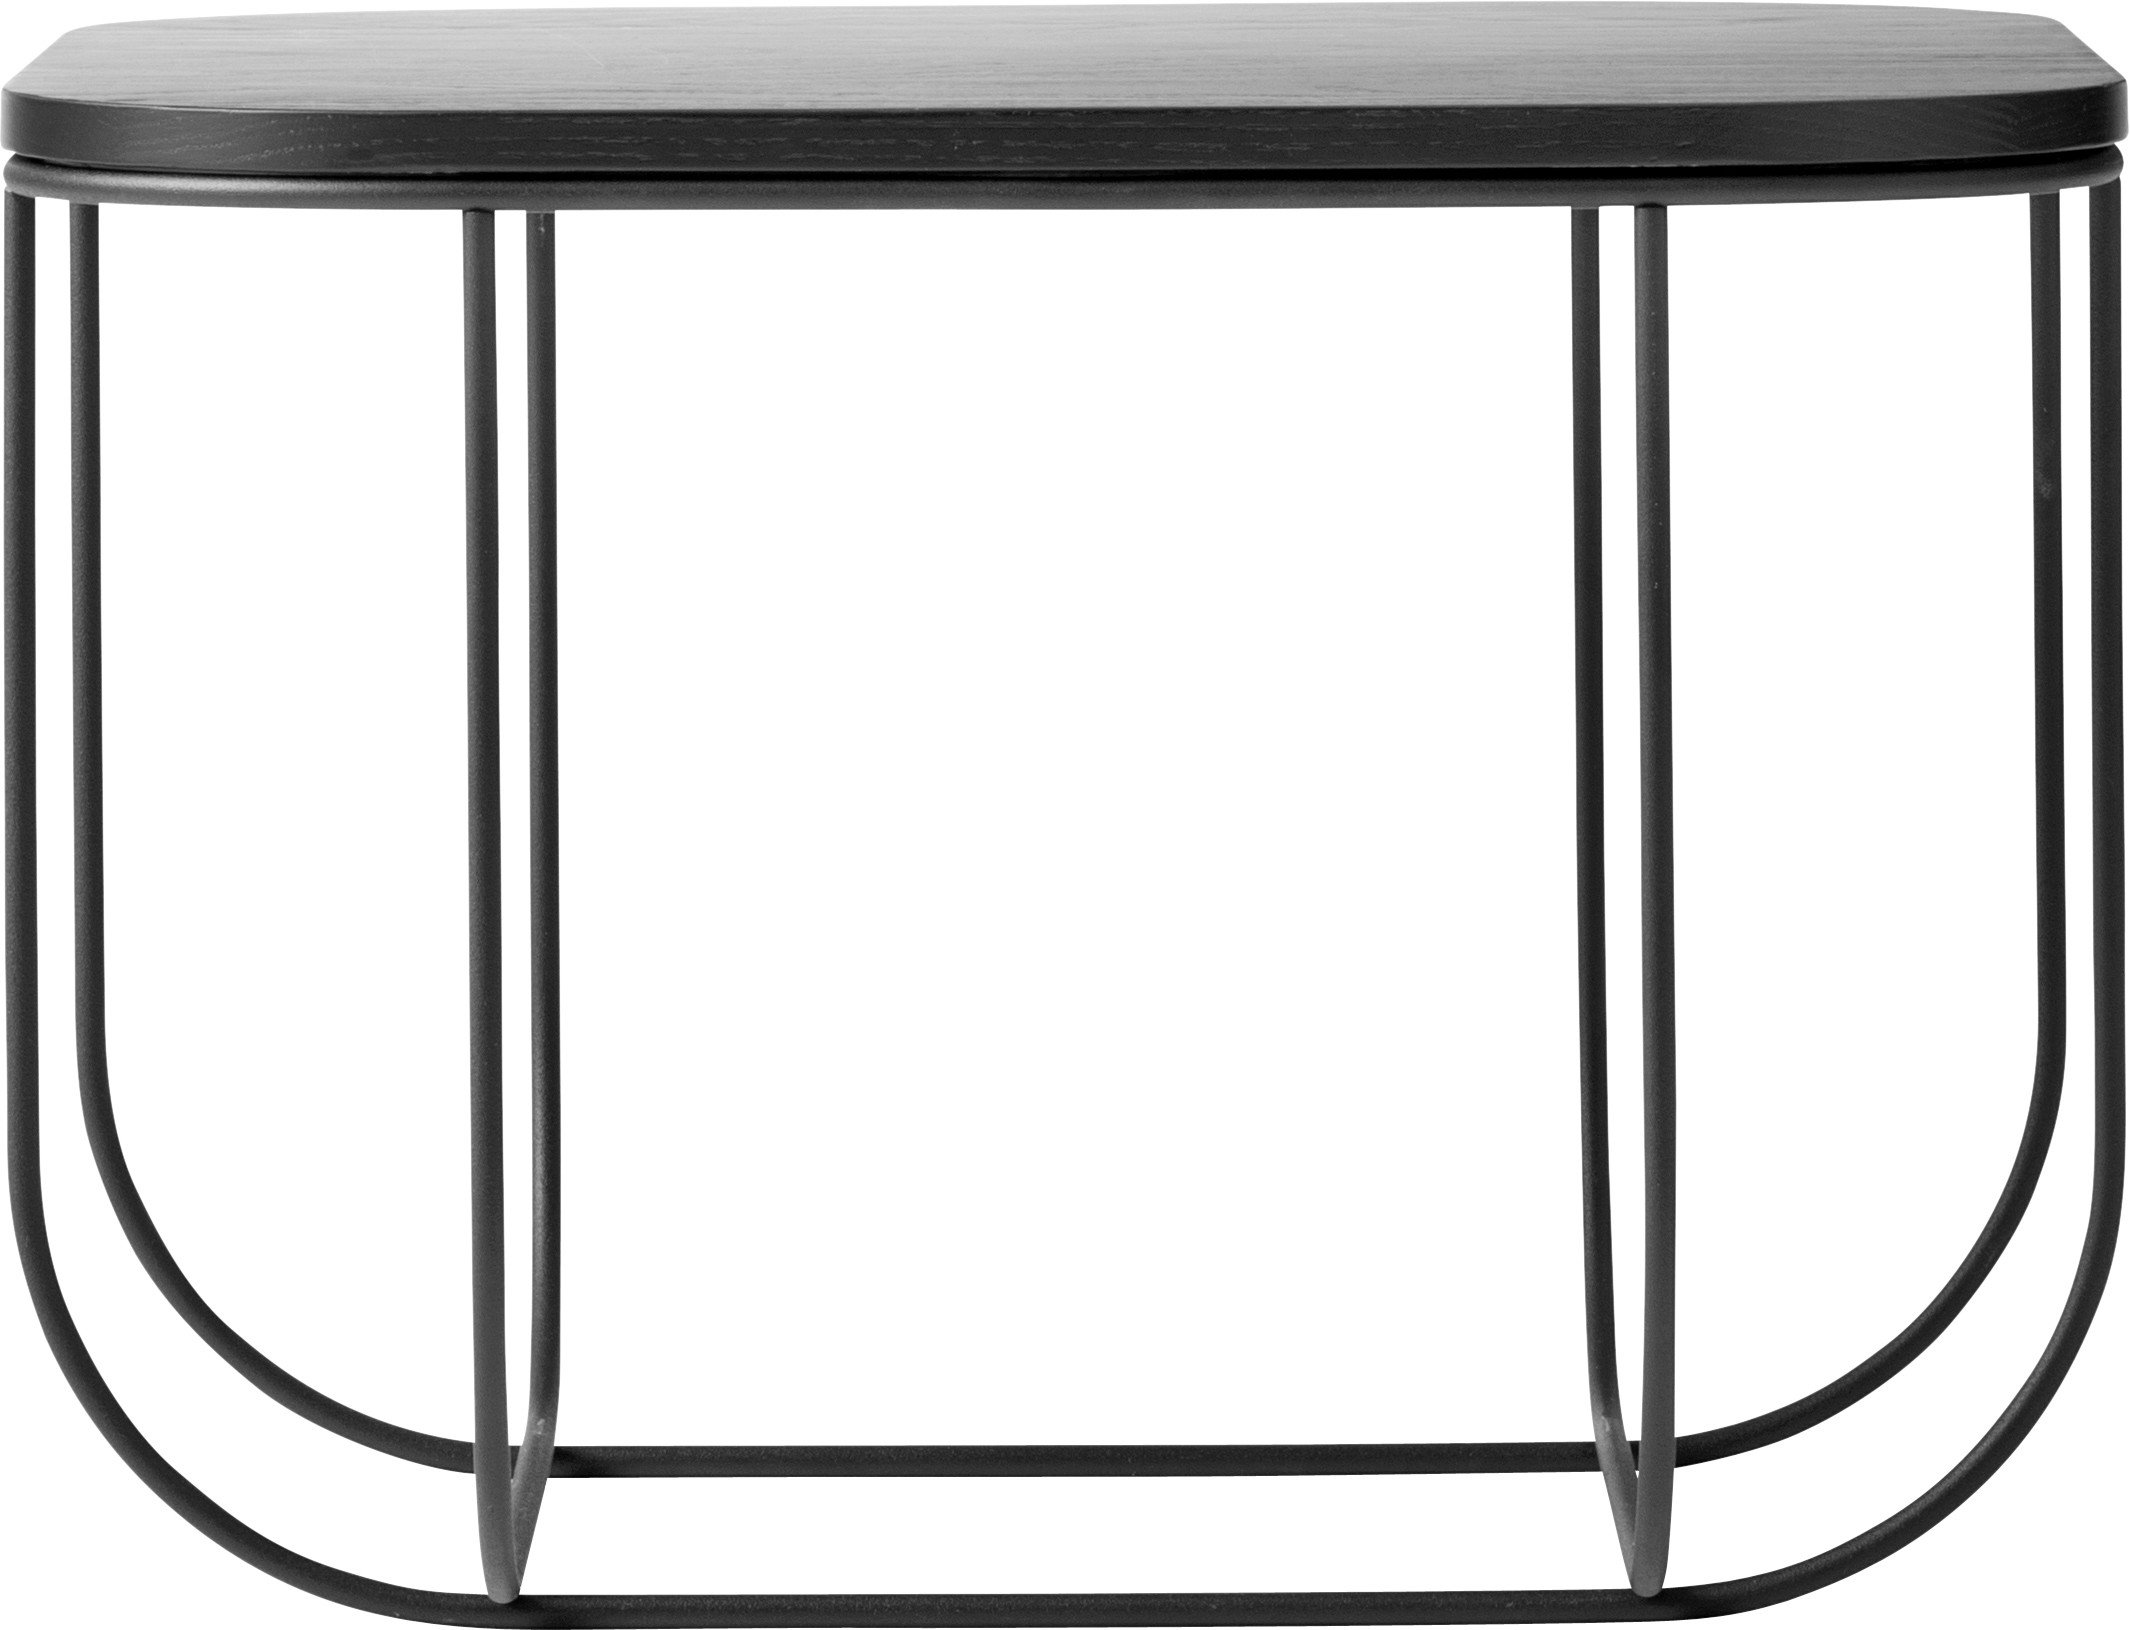 Cage Table Black/Black Ash by Form Us WIth Love for Menu